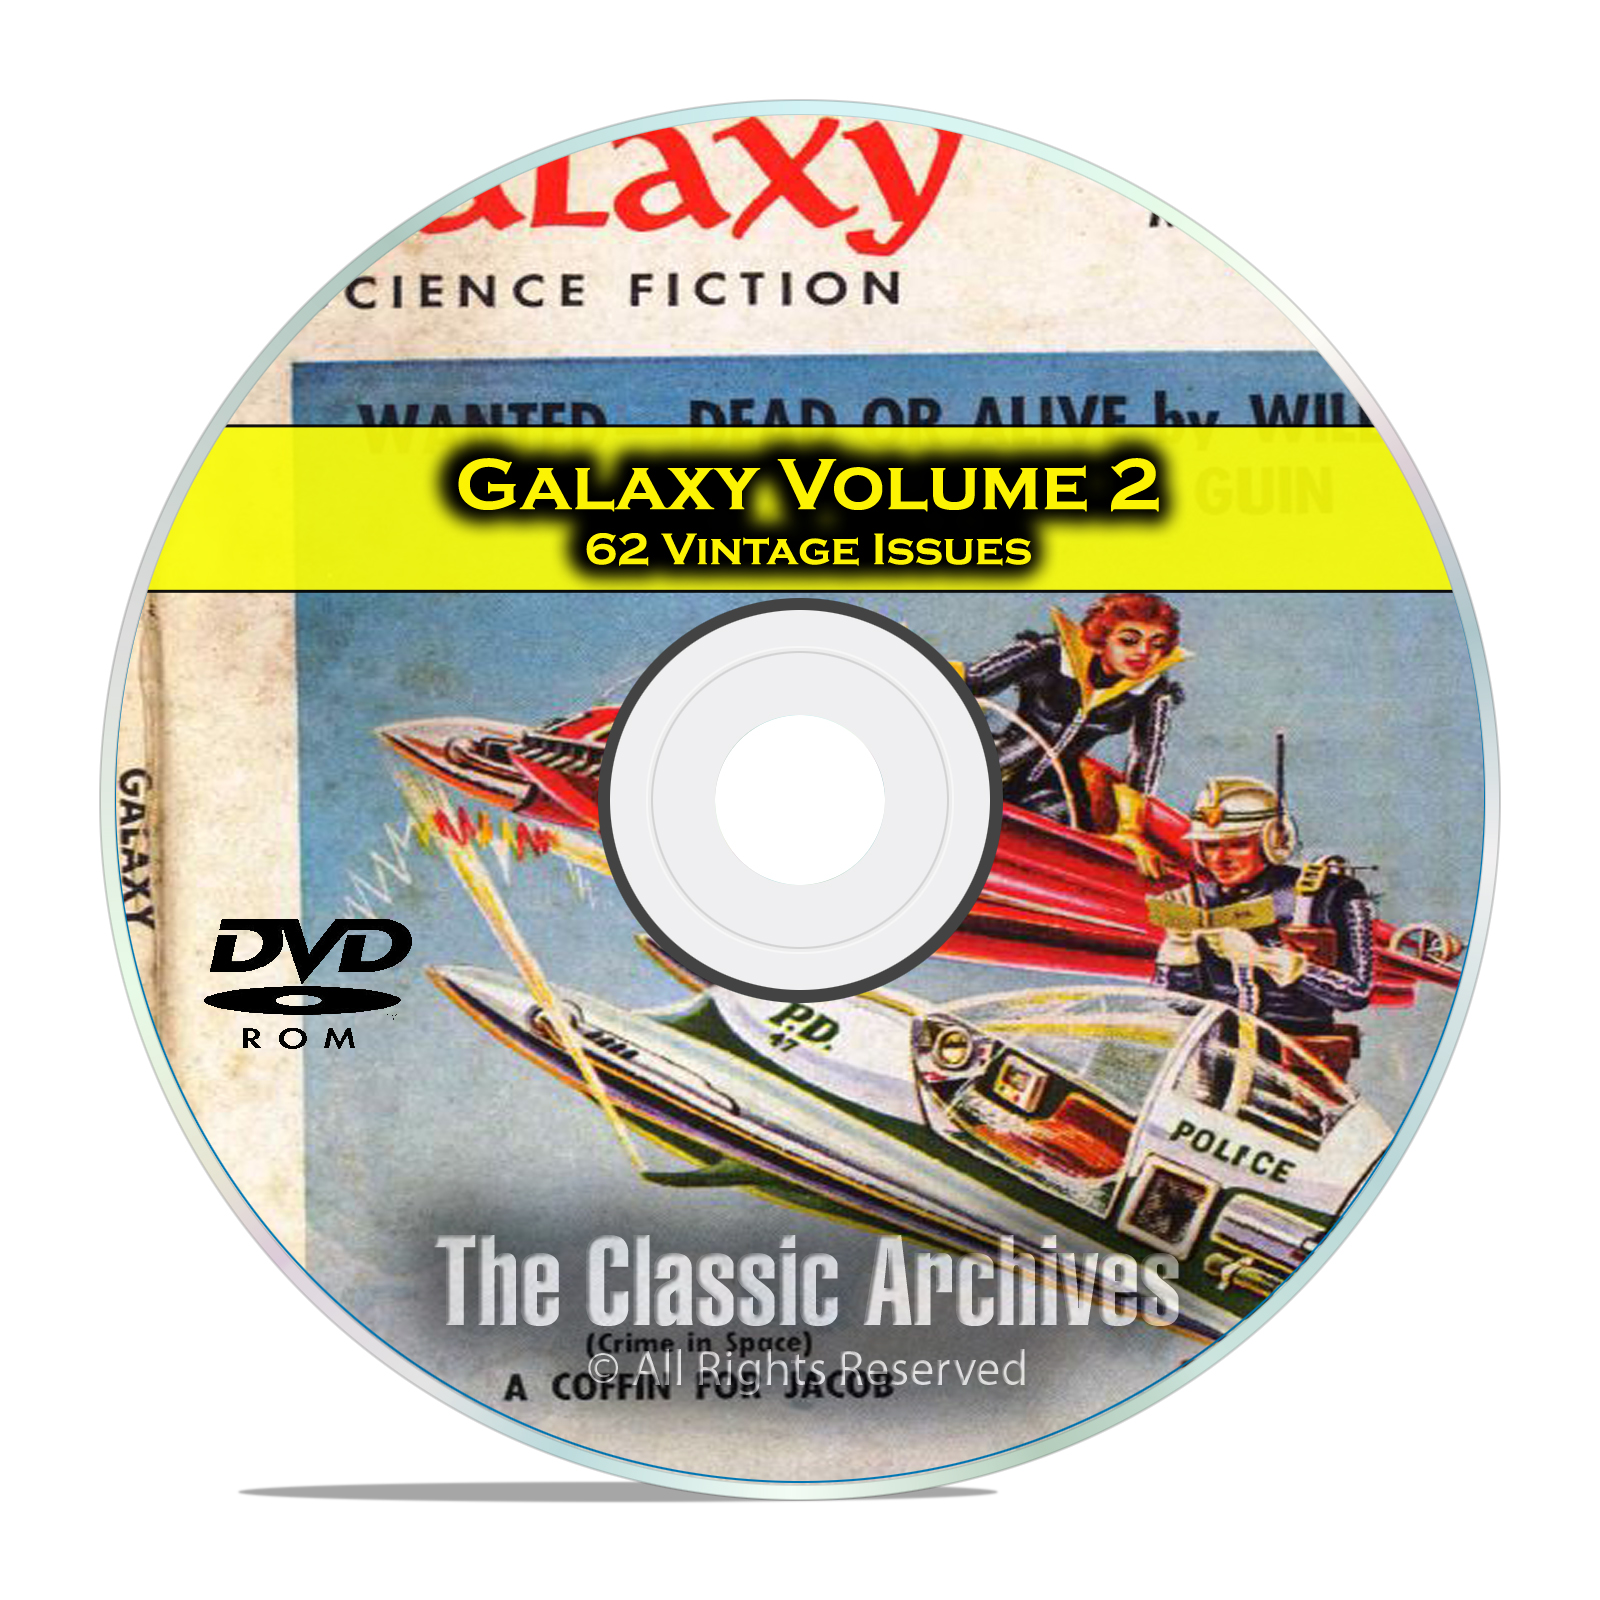 Galaxy, Vol 2, 62 Vintage Pulp Magazine, Golden Age Science Fiction DVD